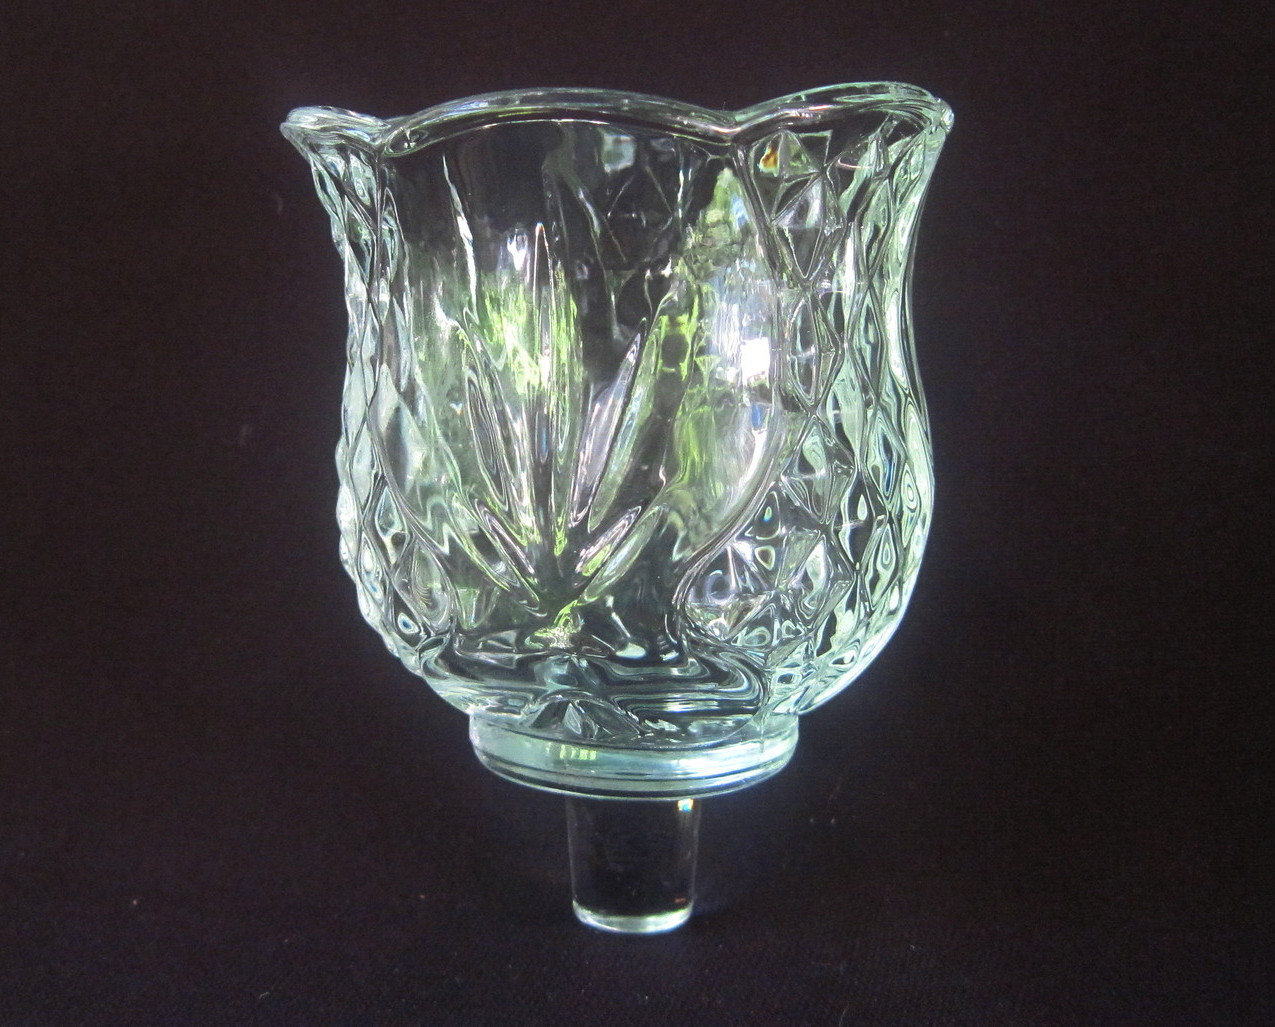 Home Interiors Pegged Votive Candle Holder Elegant Clear Candle Holders Accessories